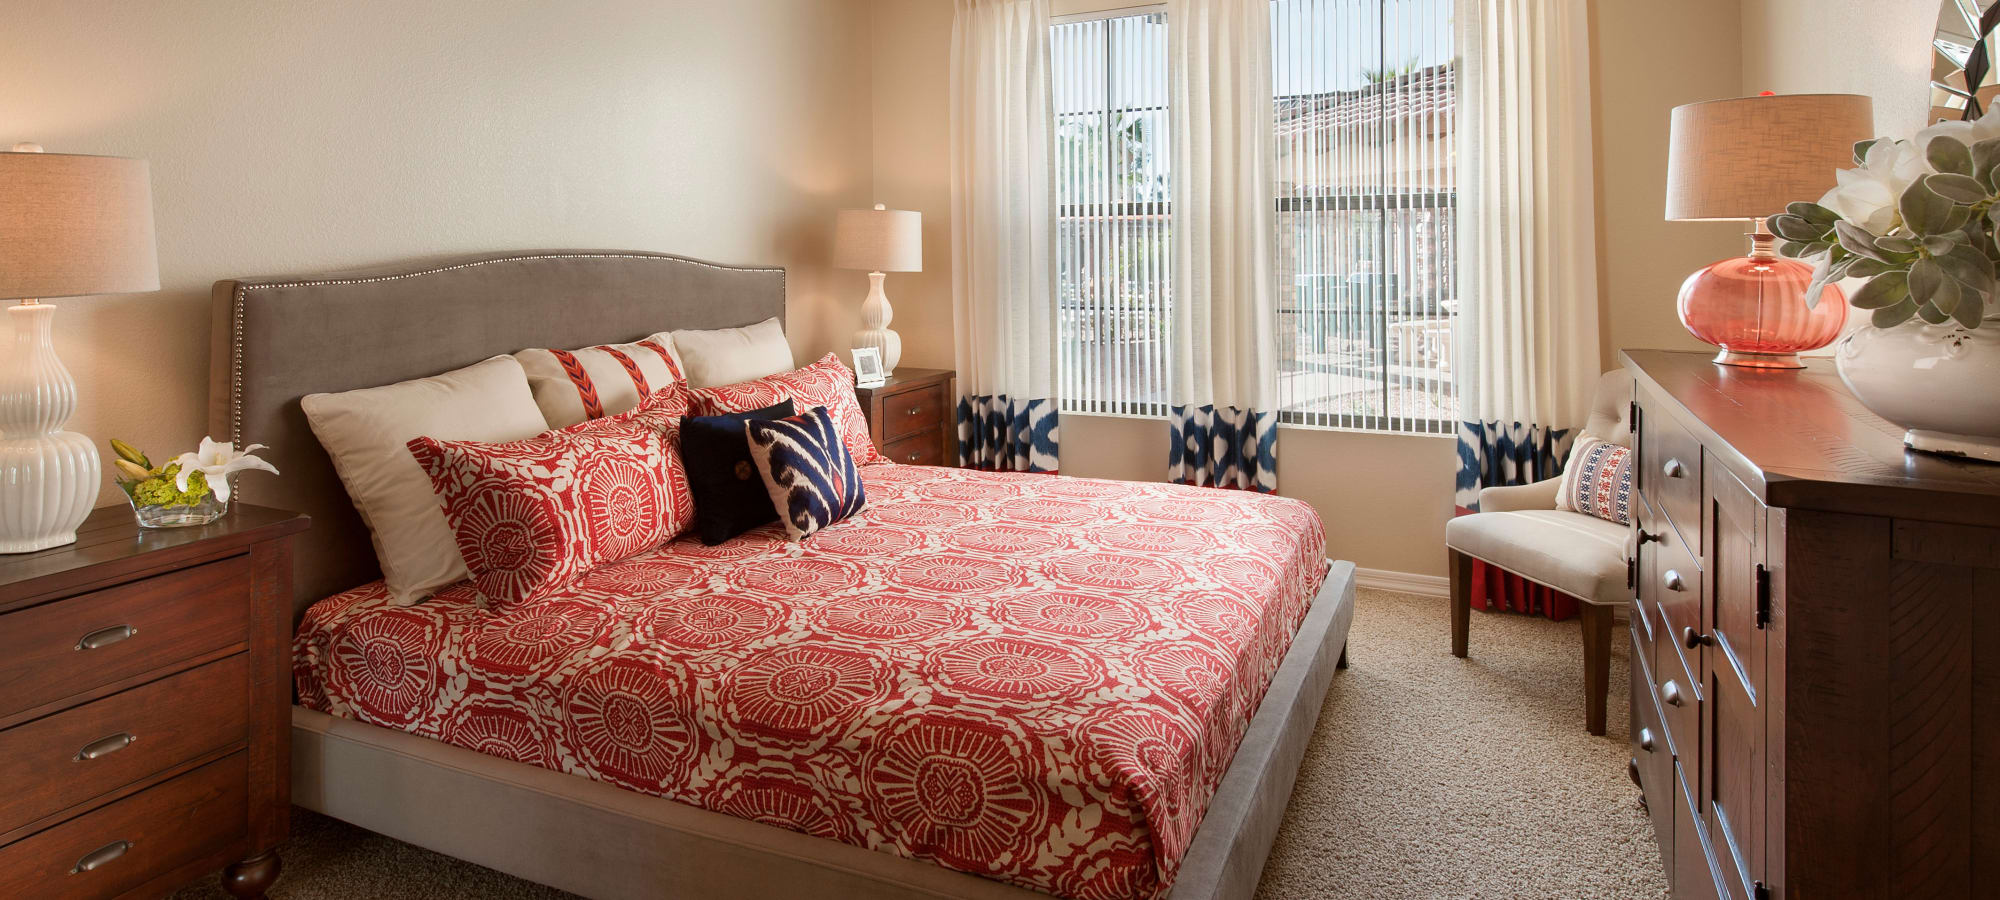 Bedroom with large windows in model home at San Capella in Tempe, Arizona